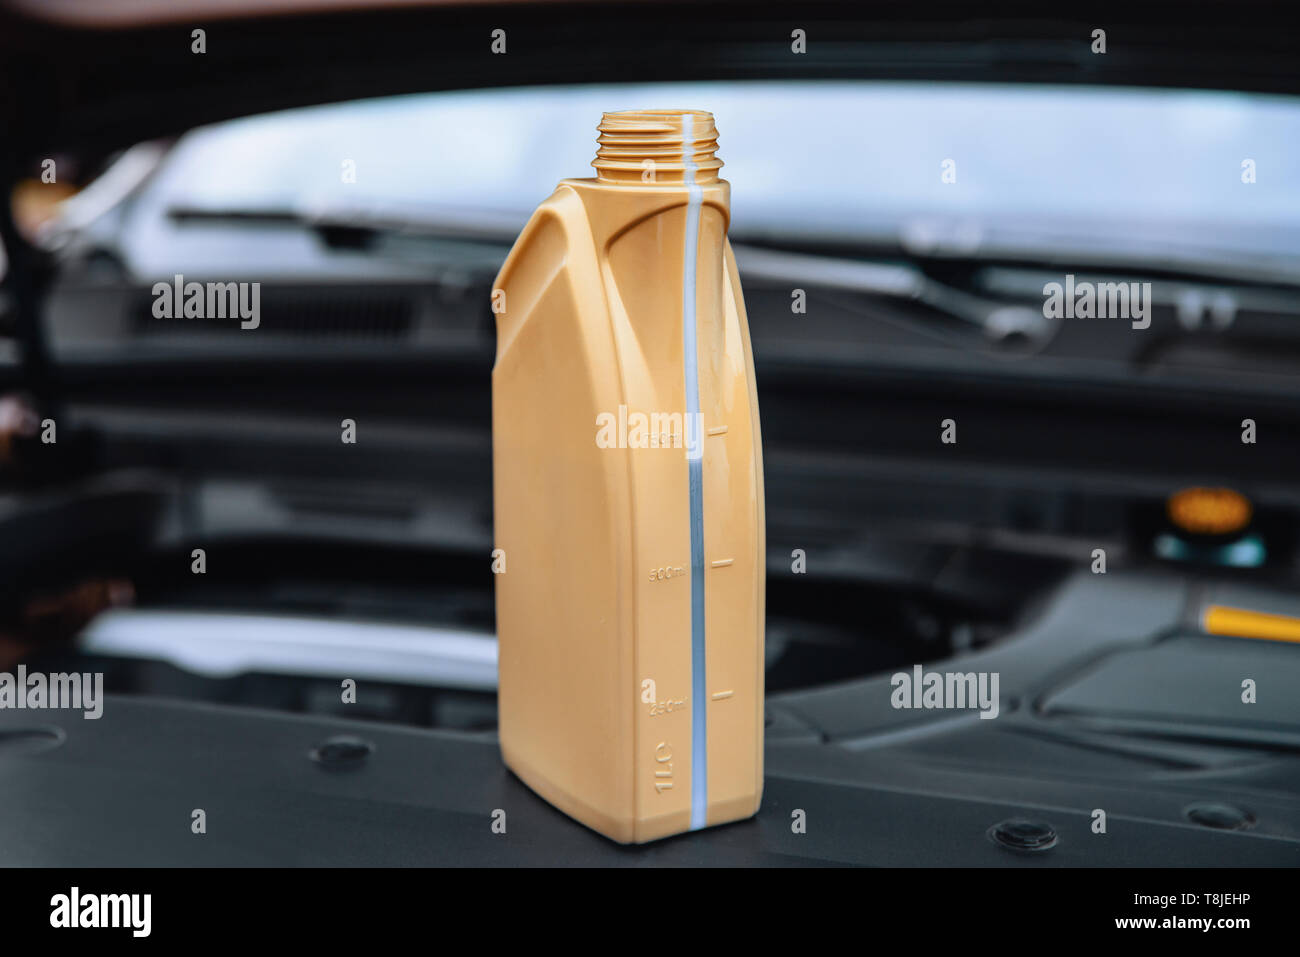 Capacity with engine oil near the car engine - Stock Image